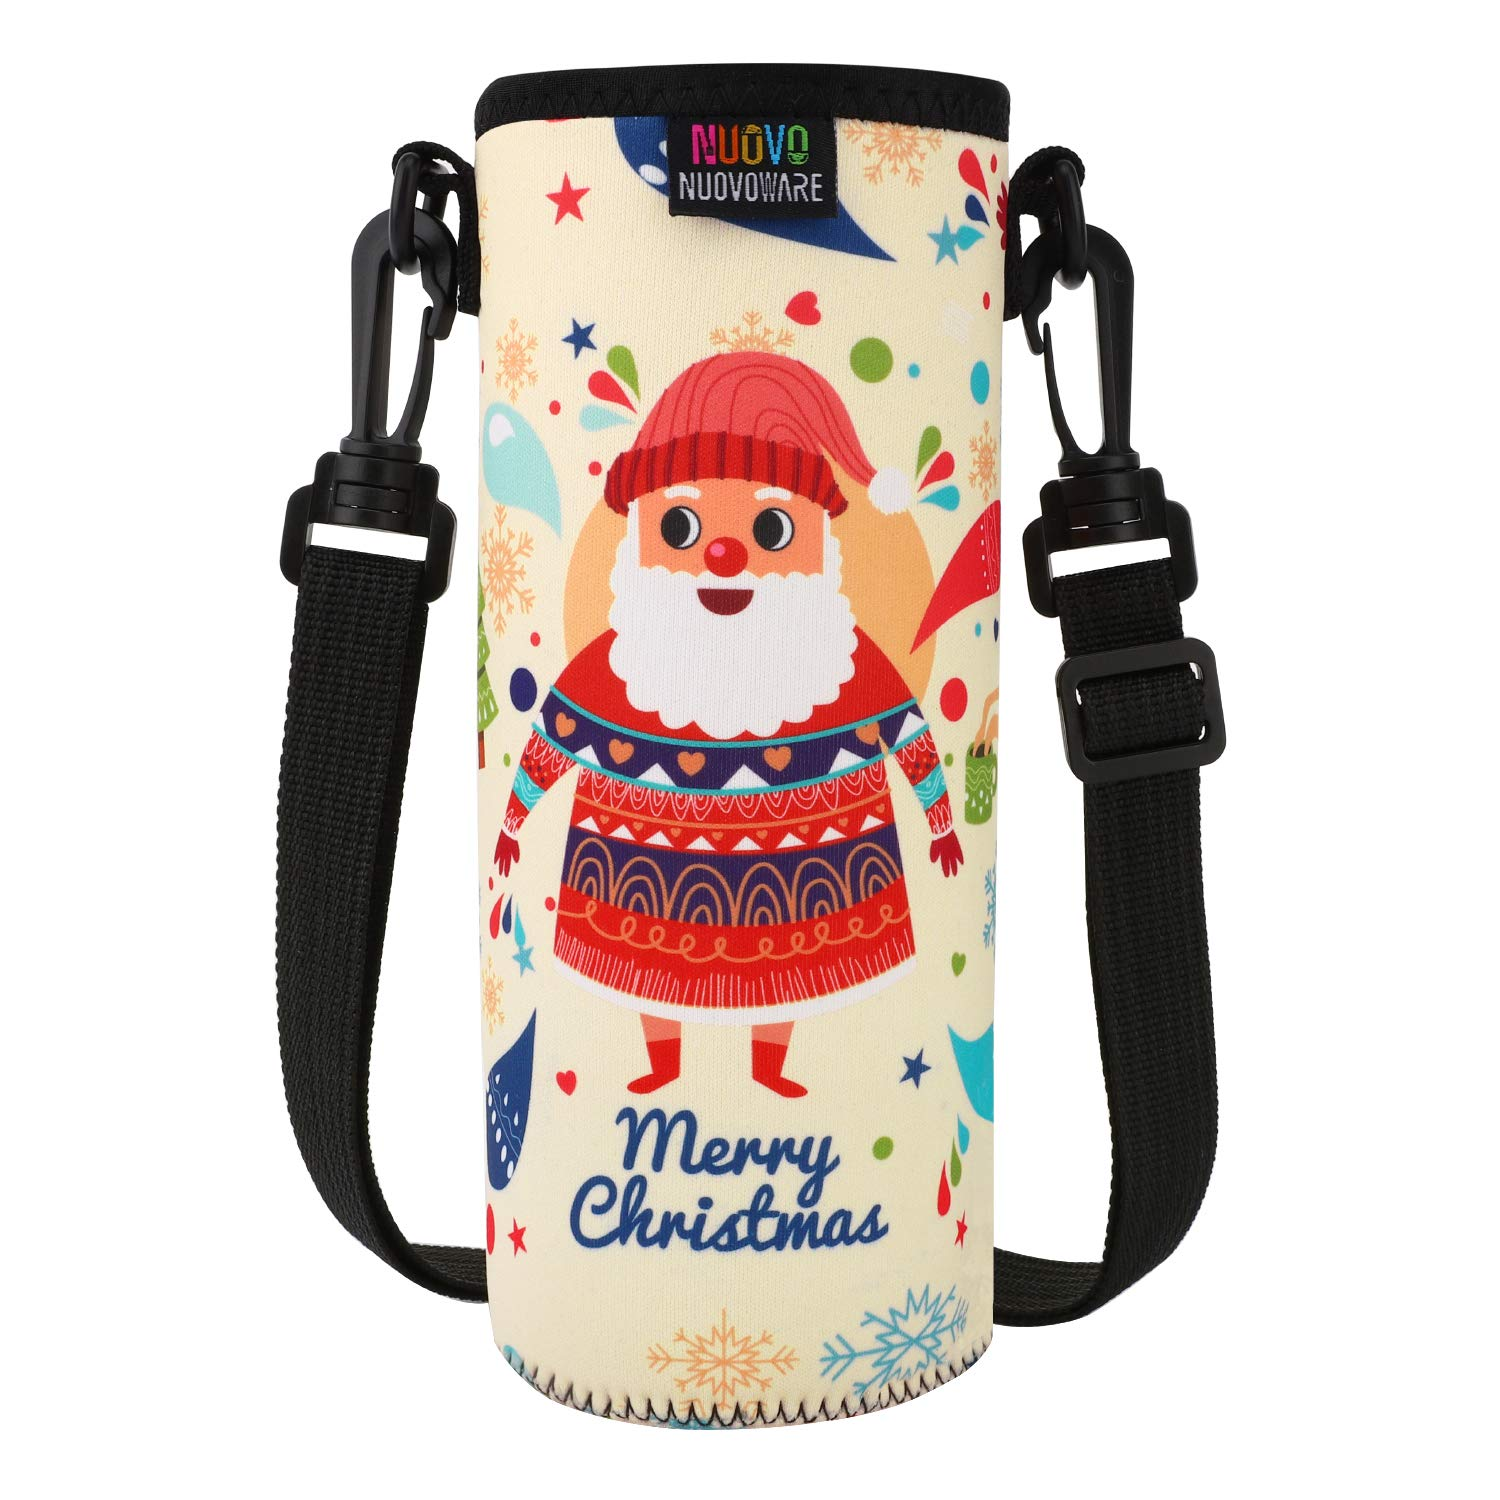 Nuovoware Water Bottle Carrier, Premium Neoprene Portable Insulated Water Bottle Holder Bag 1000ML with Adjustable Shoulder Strap Fit Stainless Steel, Glass & Plastic Bottles, Large Size, Santa Claus